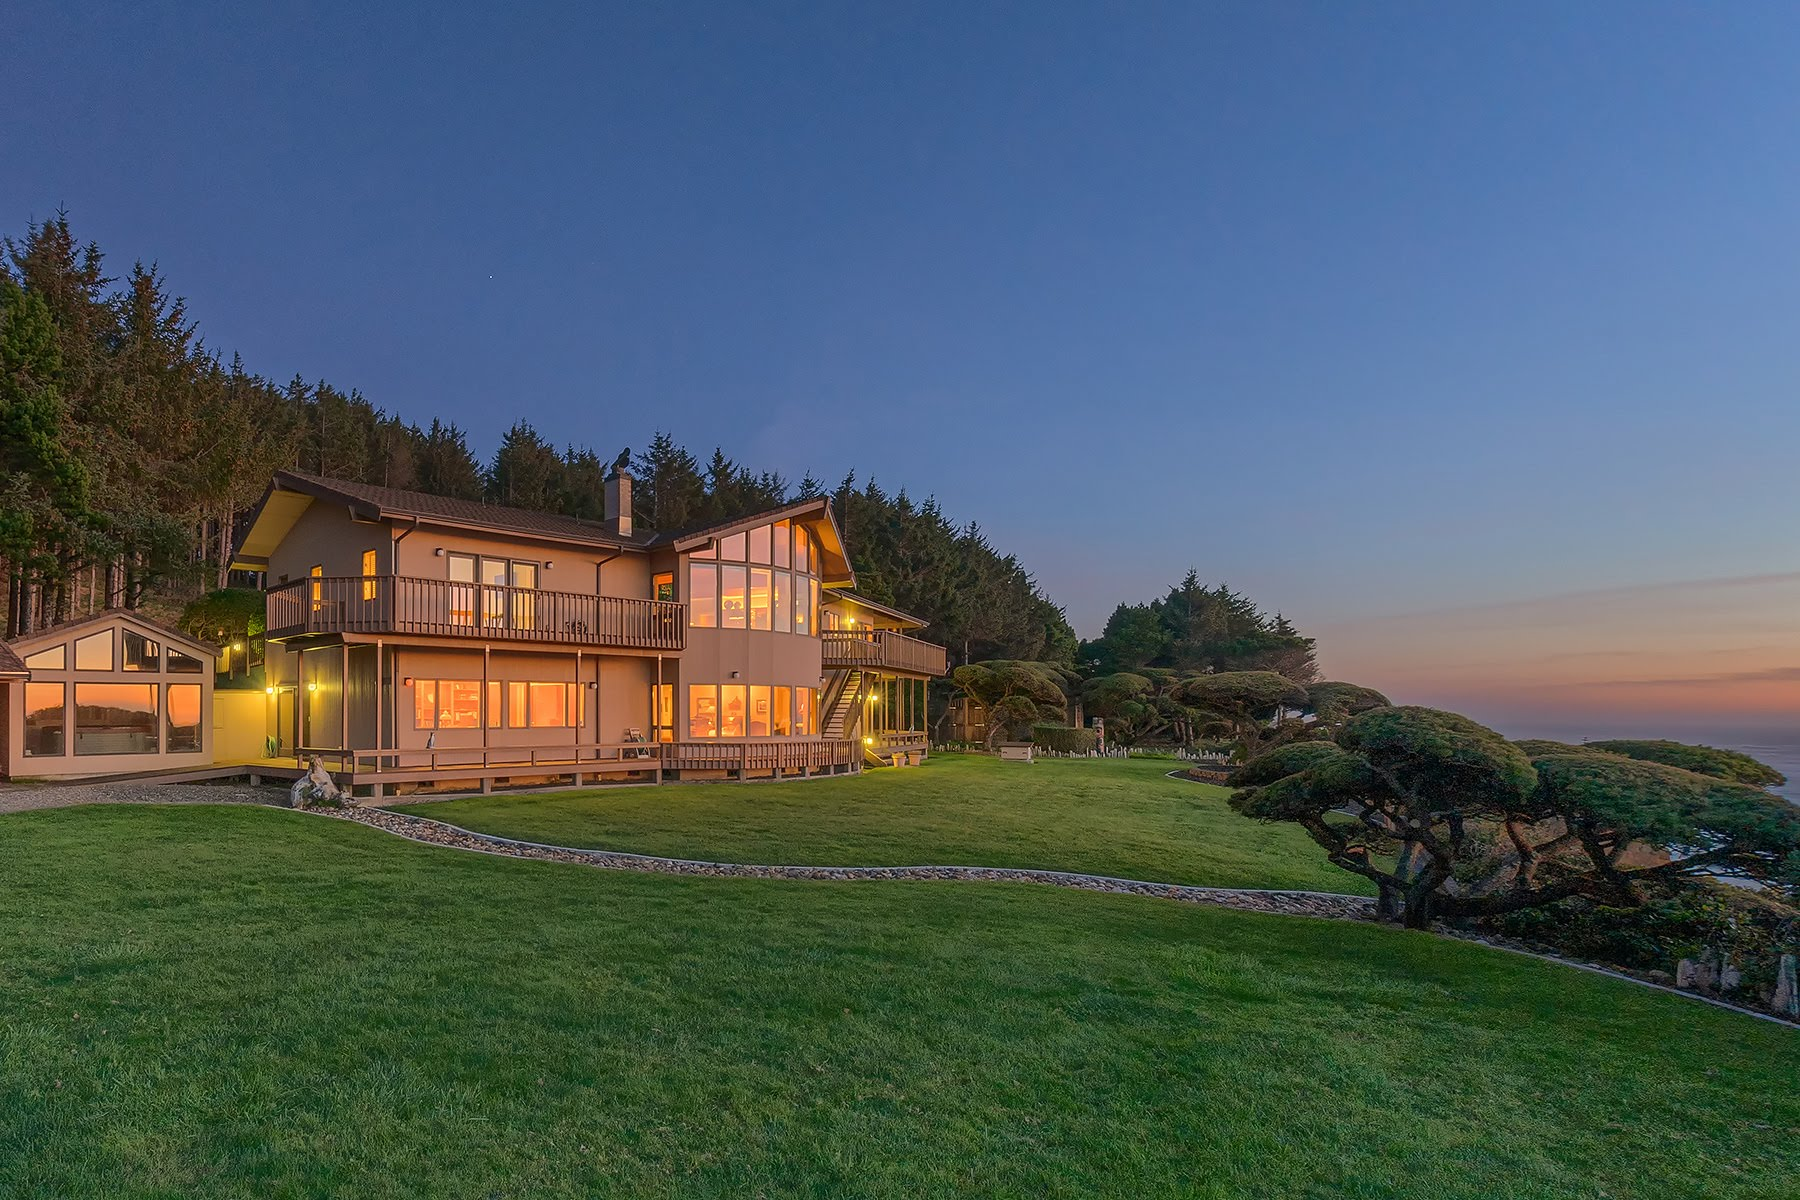 Single Family Homes for Active at Superb Oceanfront Retreat 88502 Agate Lane Bandon, Oregon 97411 United States